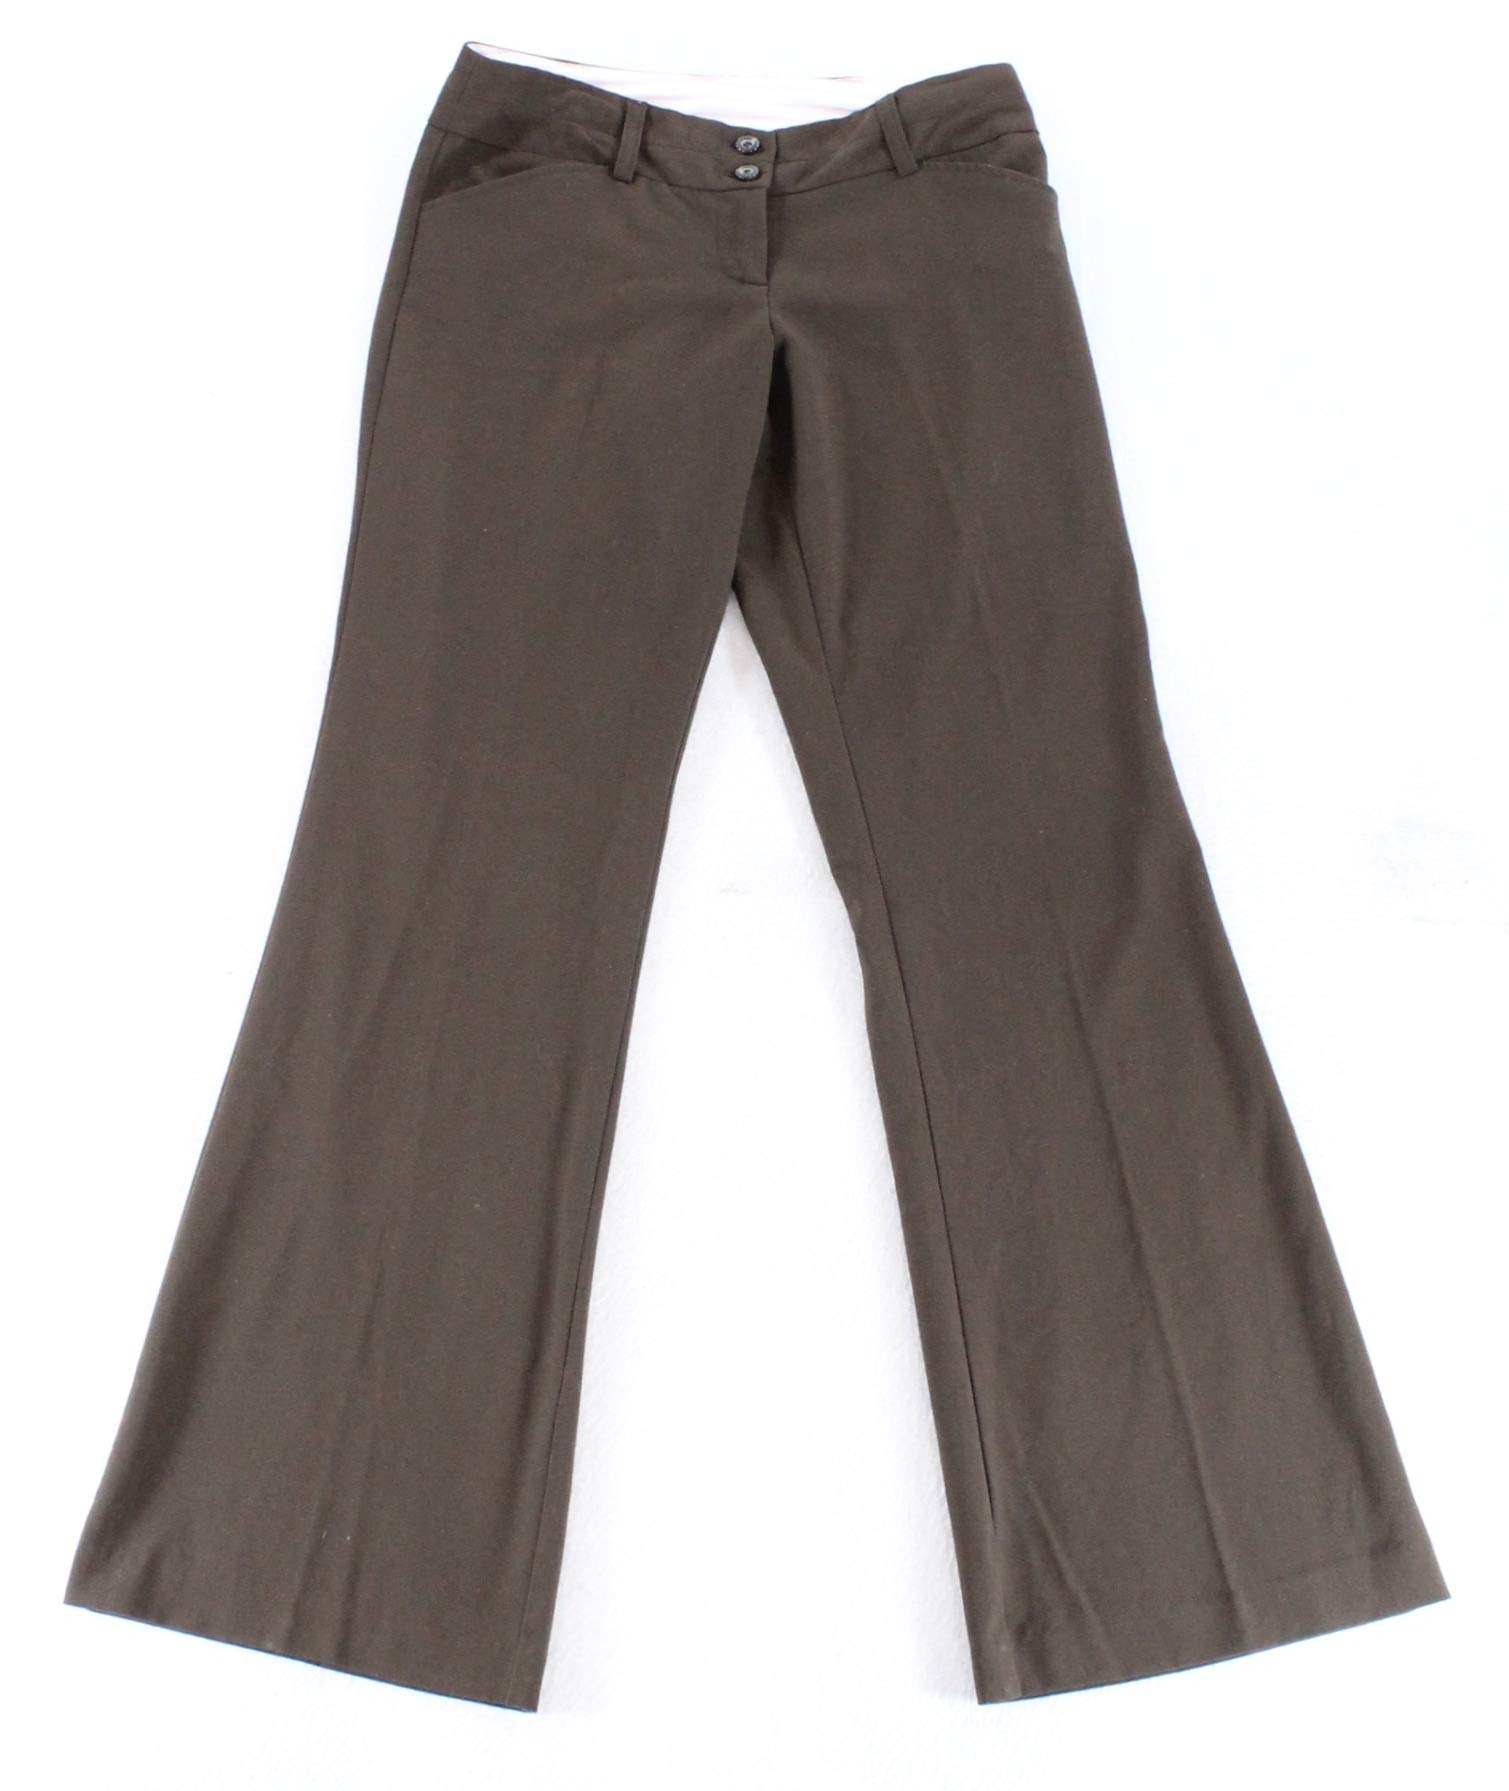 XOXO Solid Junior Stretch Straight Leg Dress Pants Brown 4 by XOXO